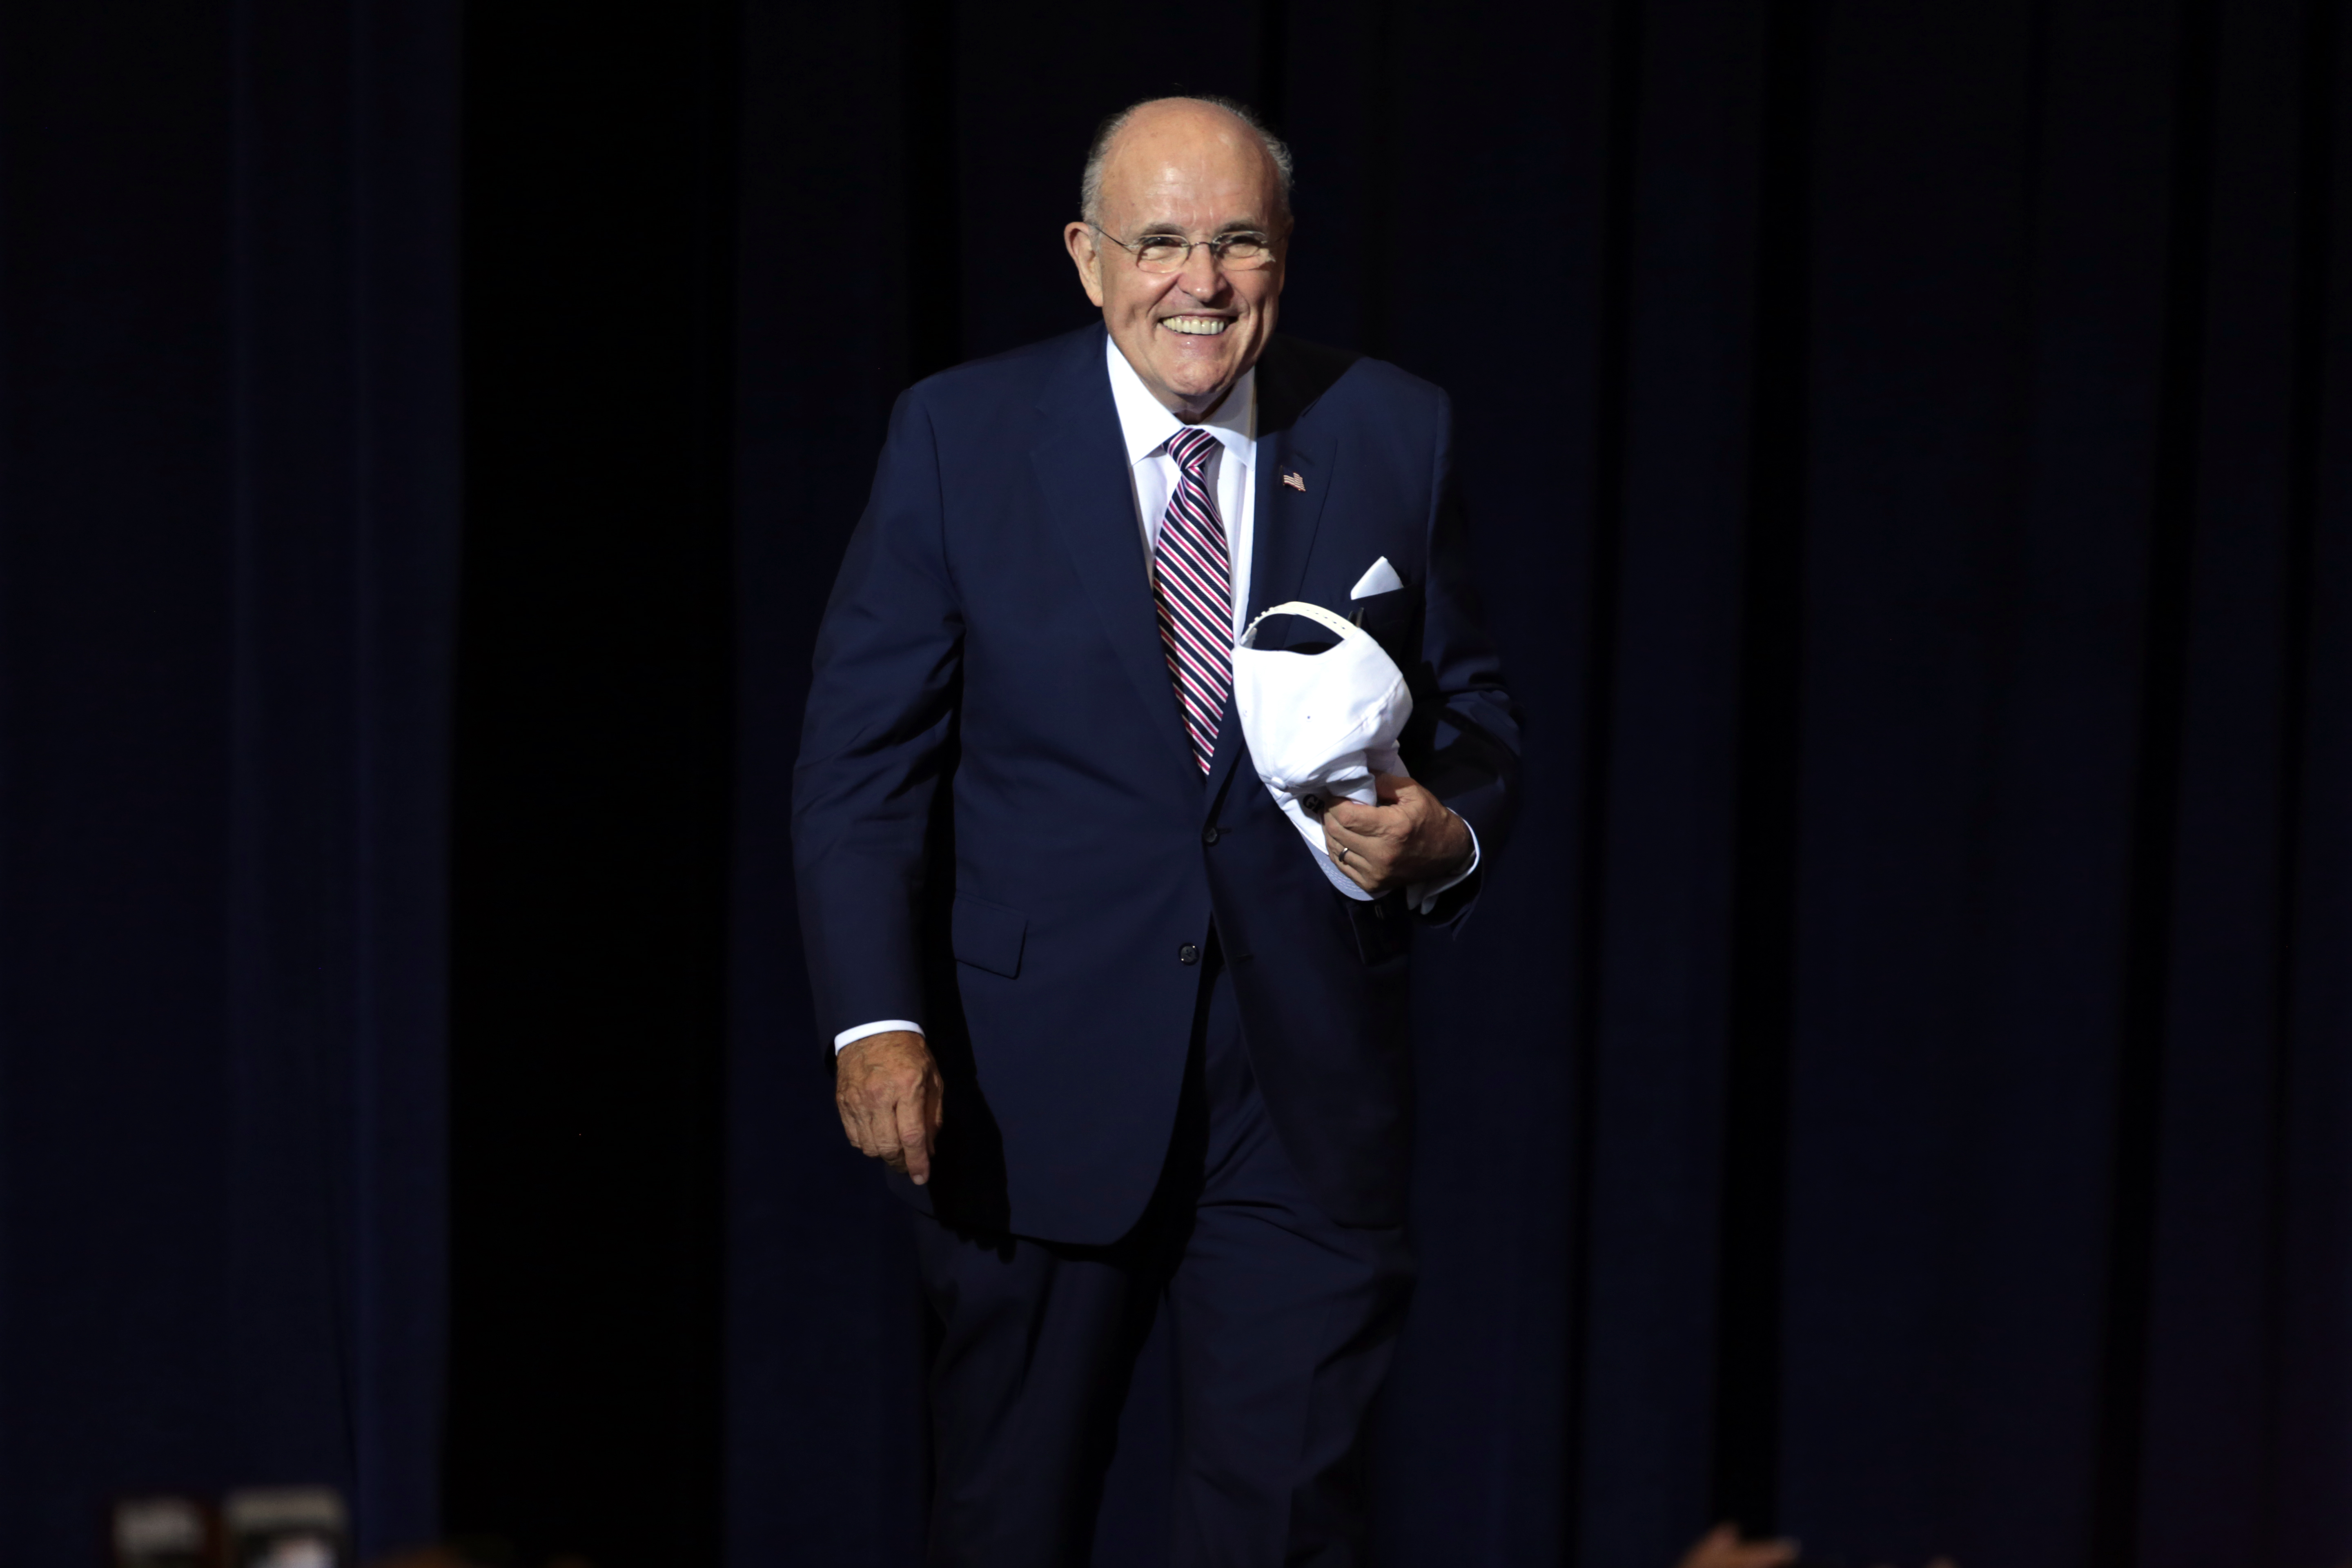 Federal judge approves release of documents from Giuliani associate to House committees